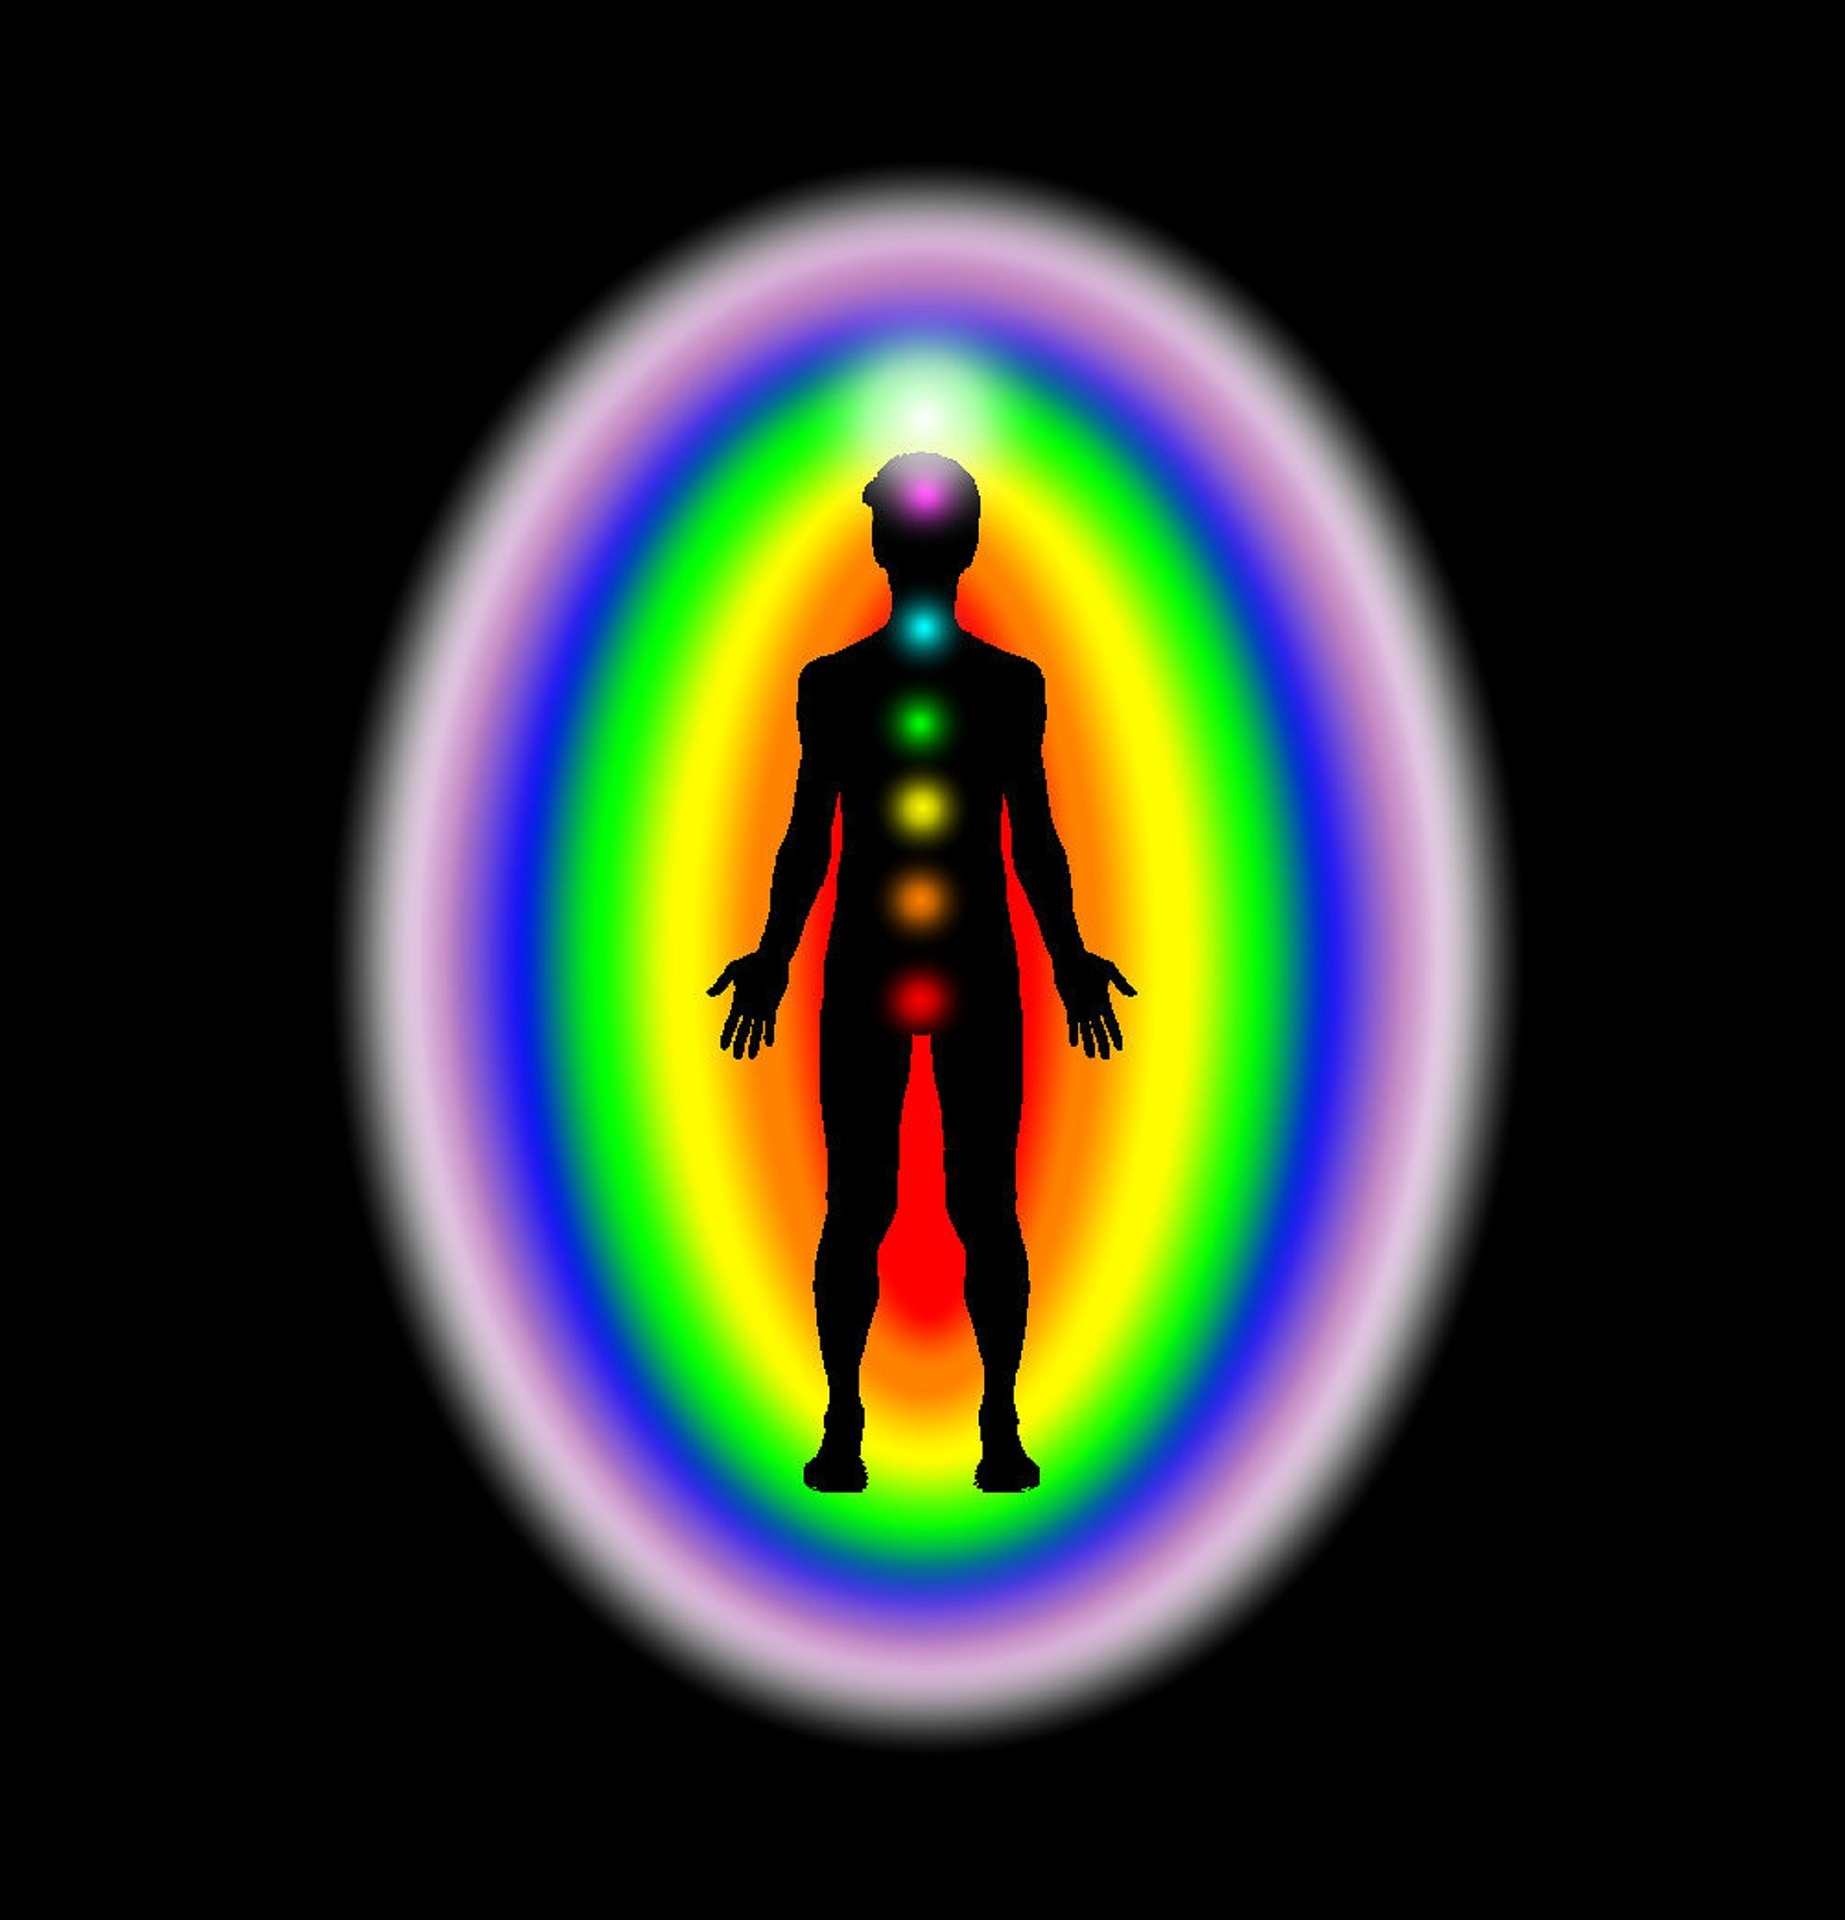 This diagram shows the location of each of the chakras. The 1st chakra is located at the base of the spine.